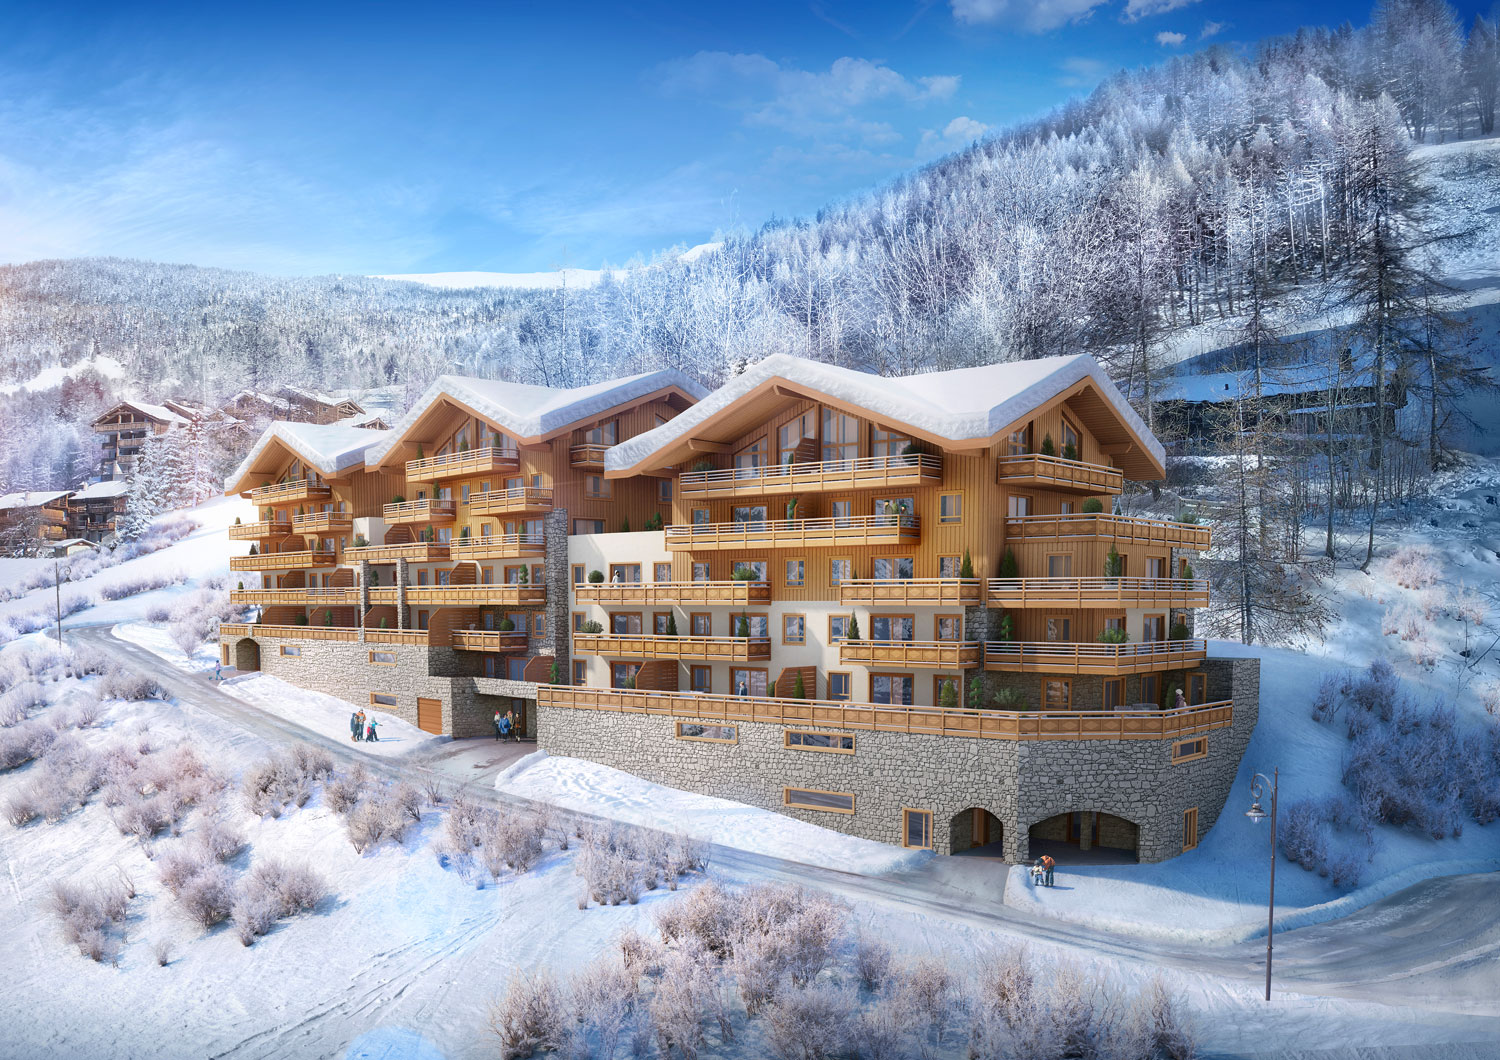 Les Fermes d'Eugenie - A New Ski-In Development In Sainte-Foy Tarentaise